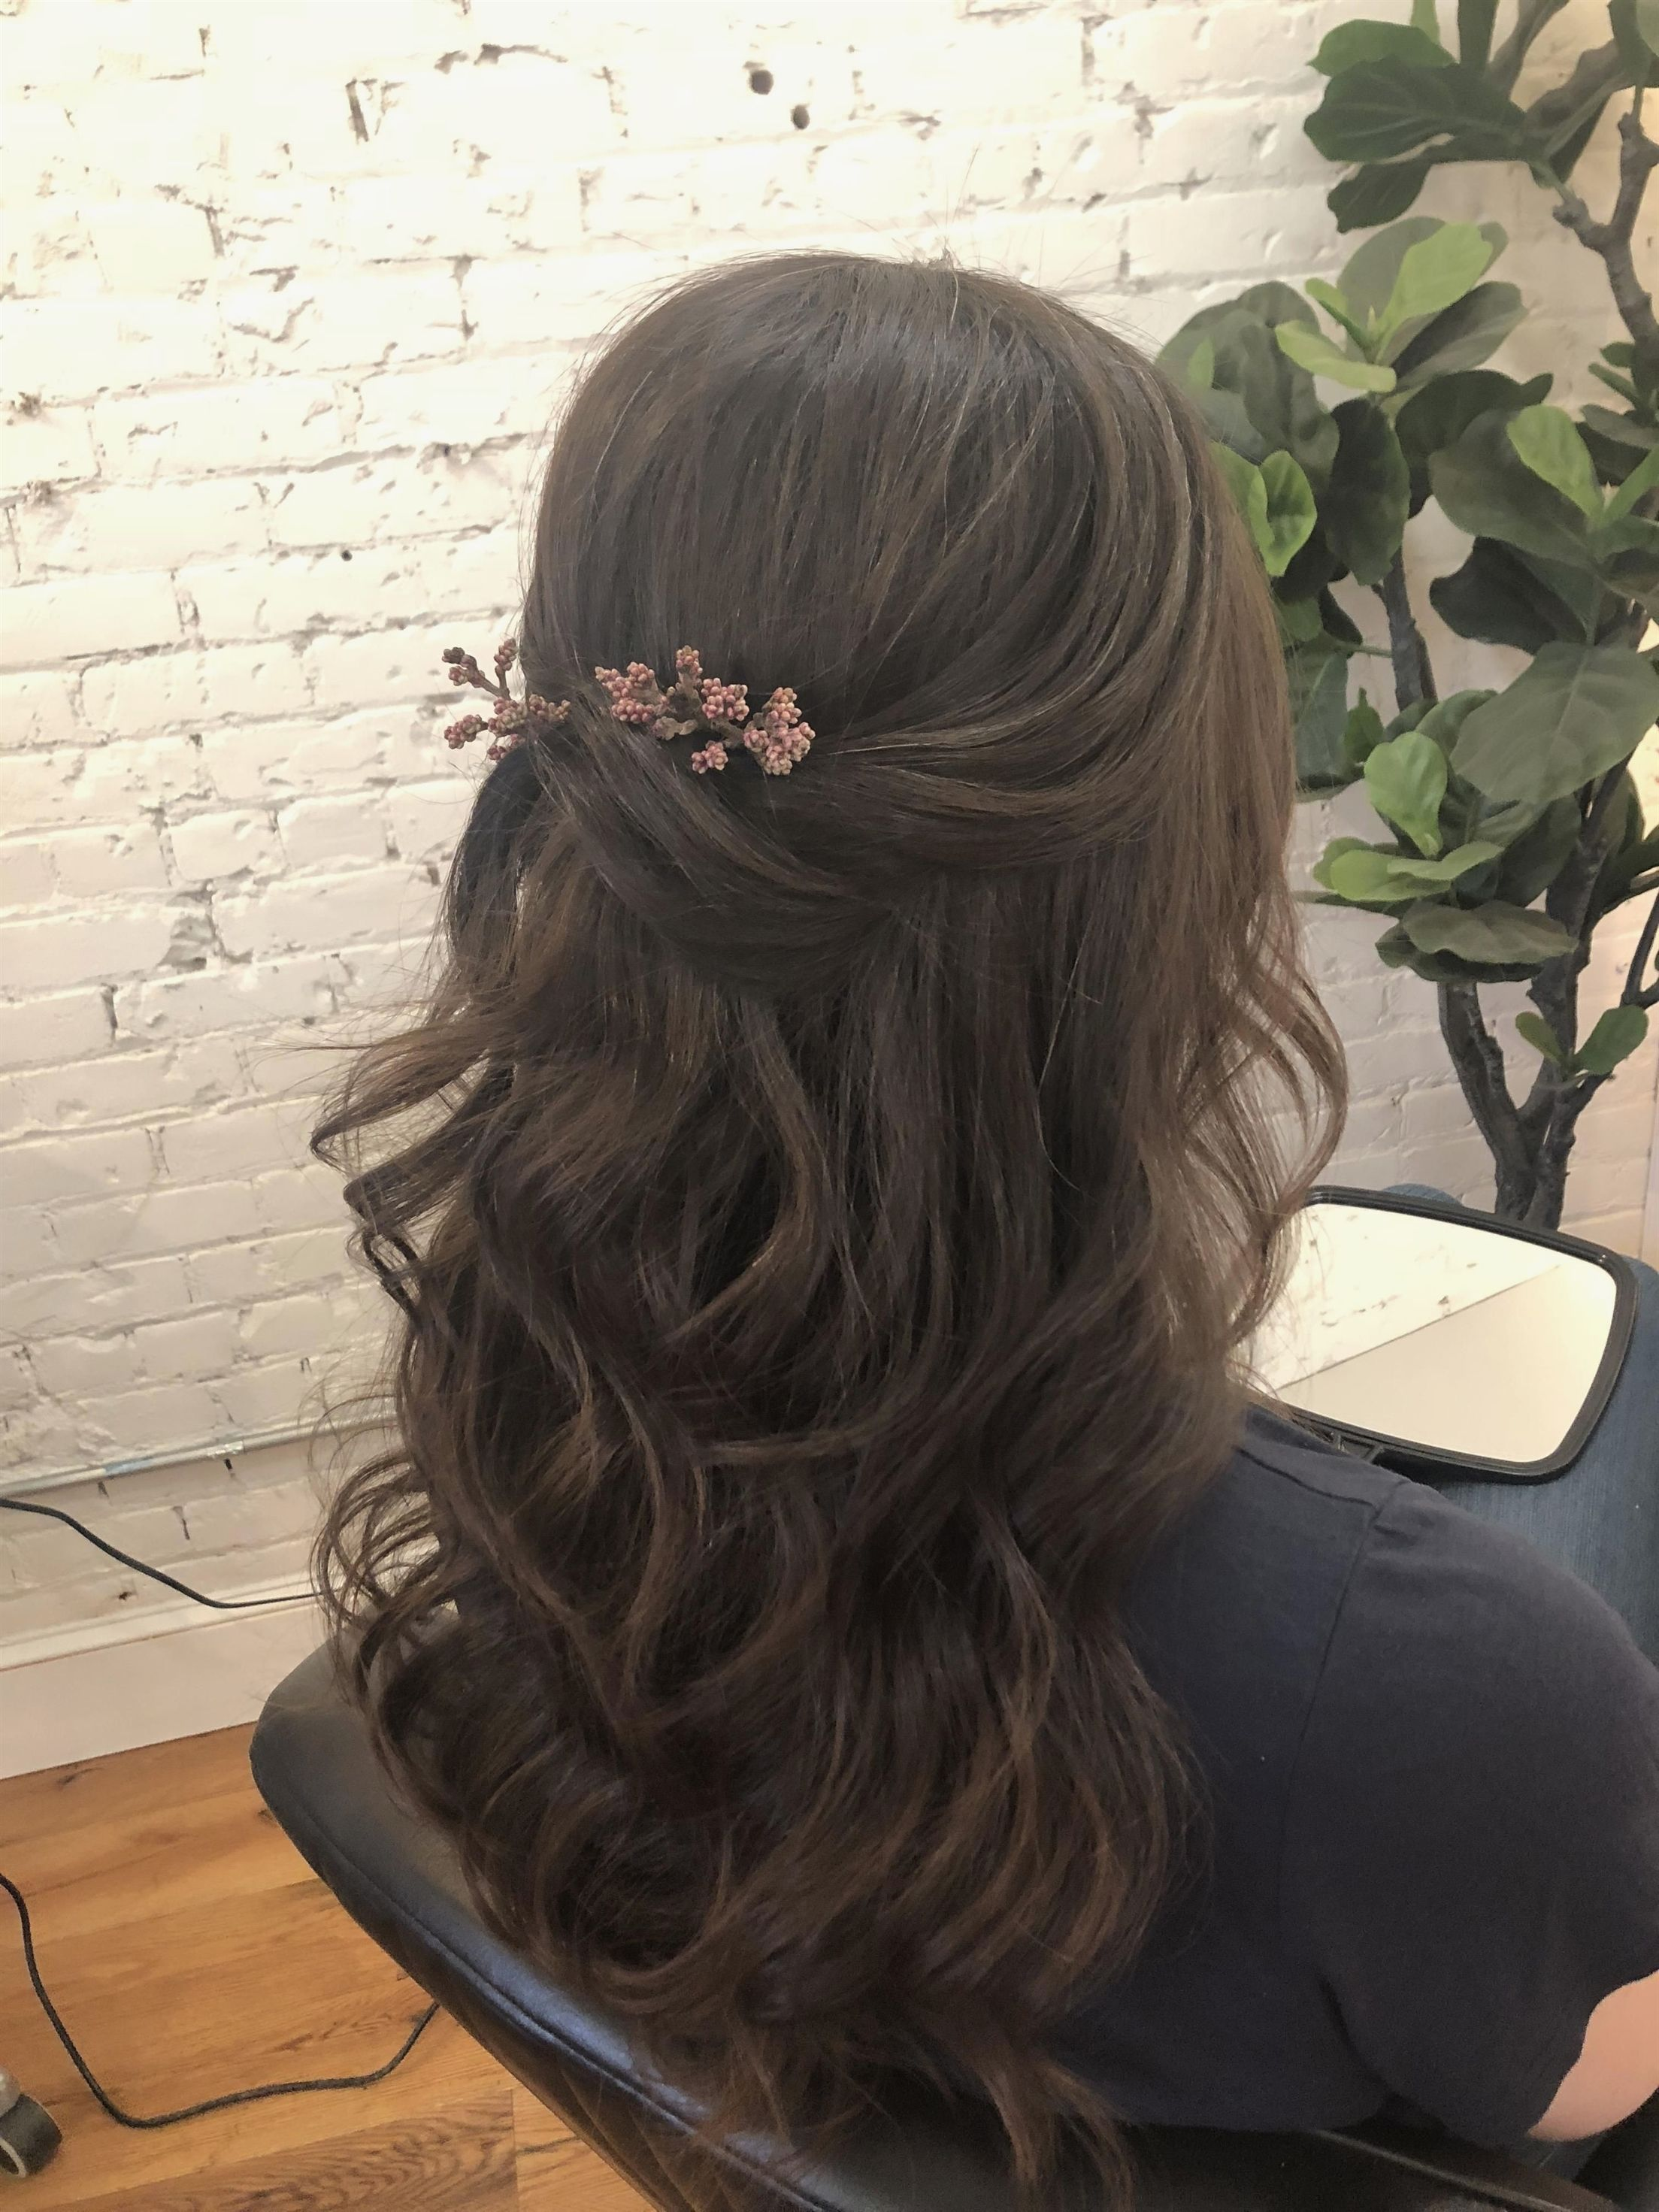 Half up half down wedding hair with subtle greenery